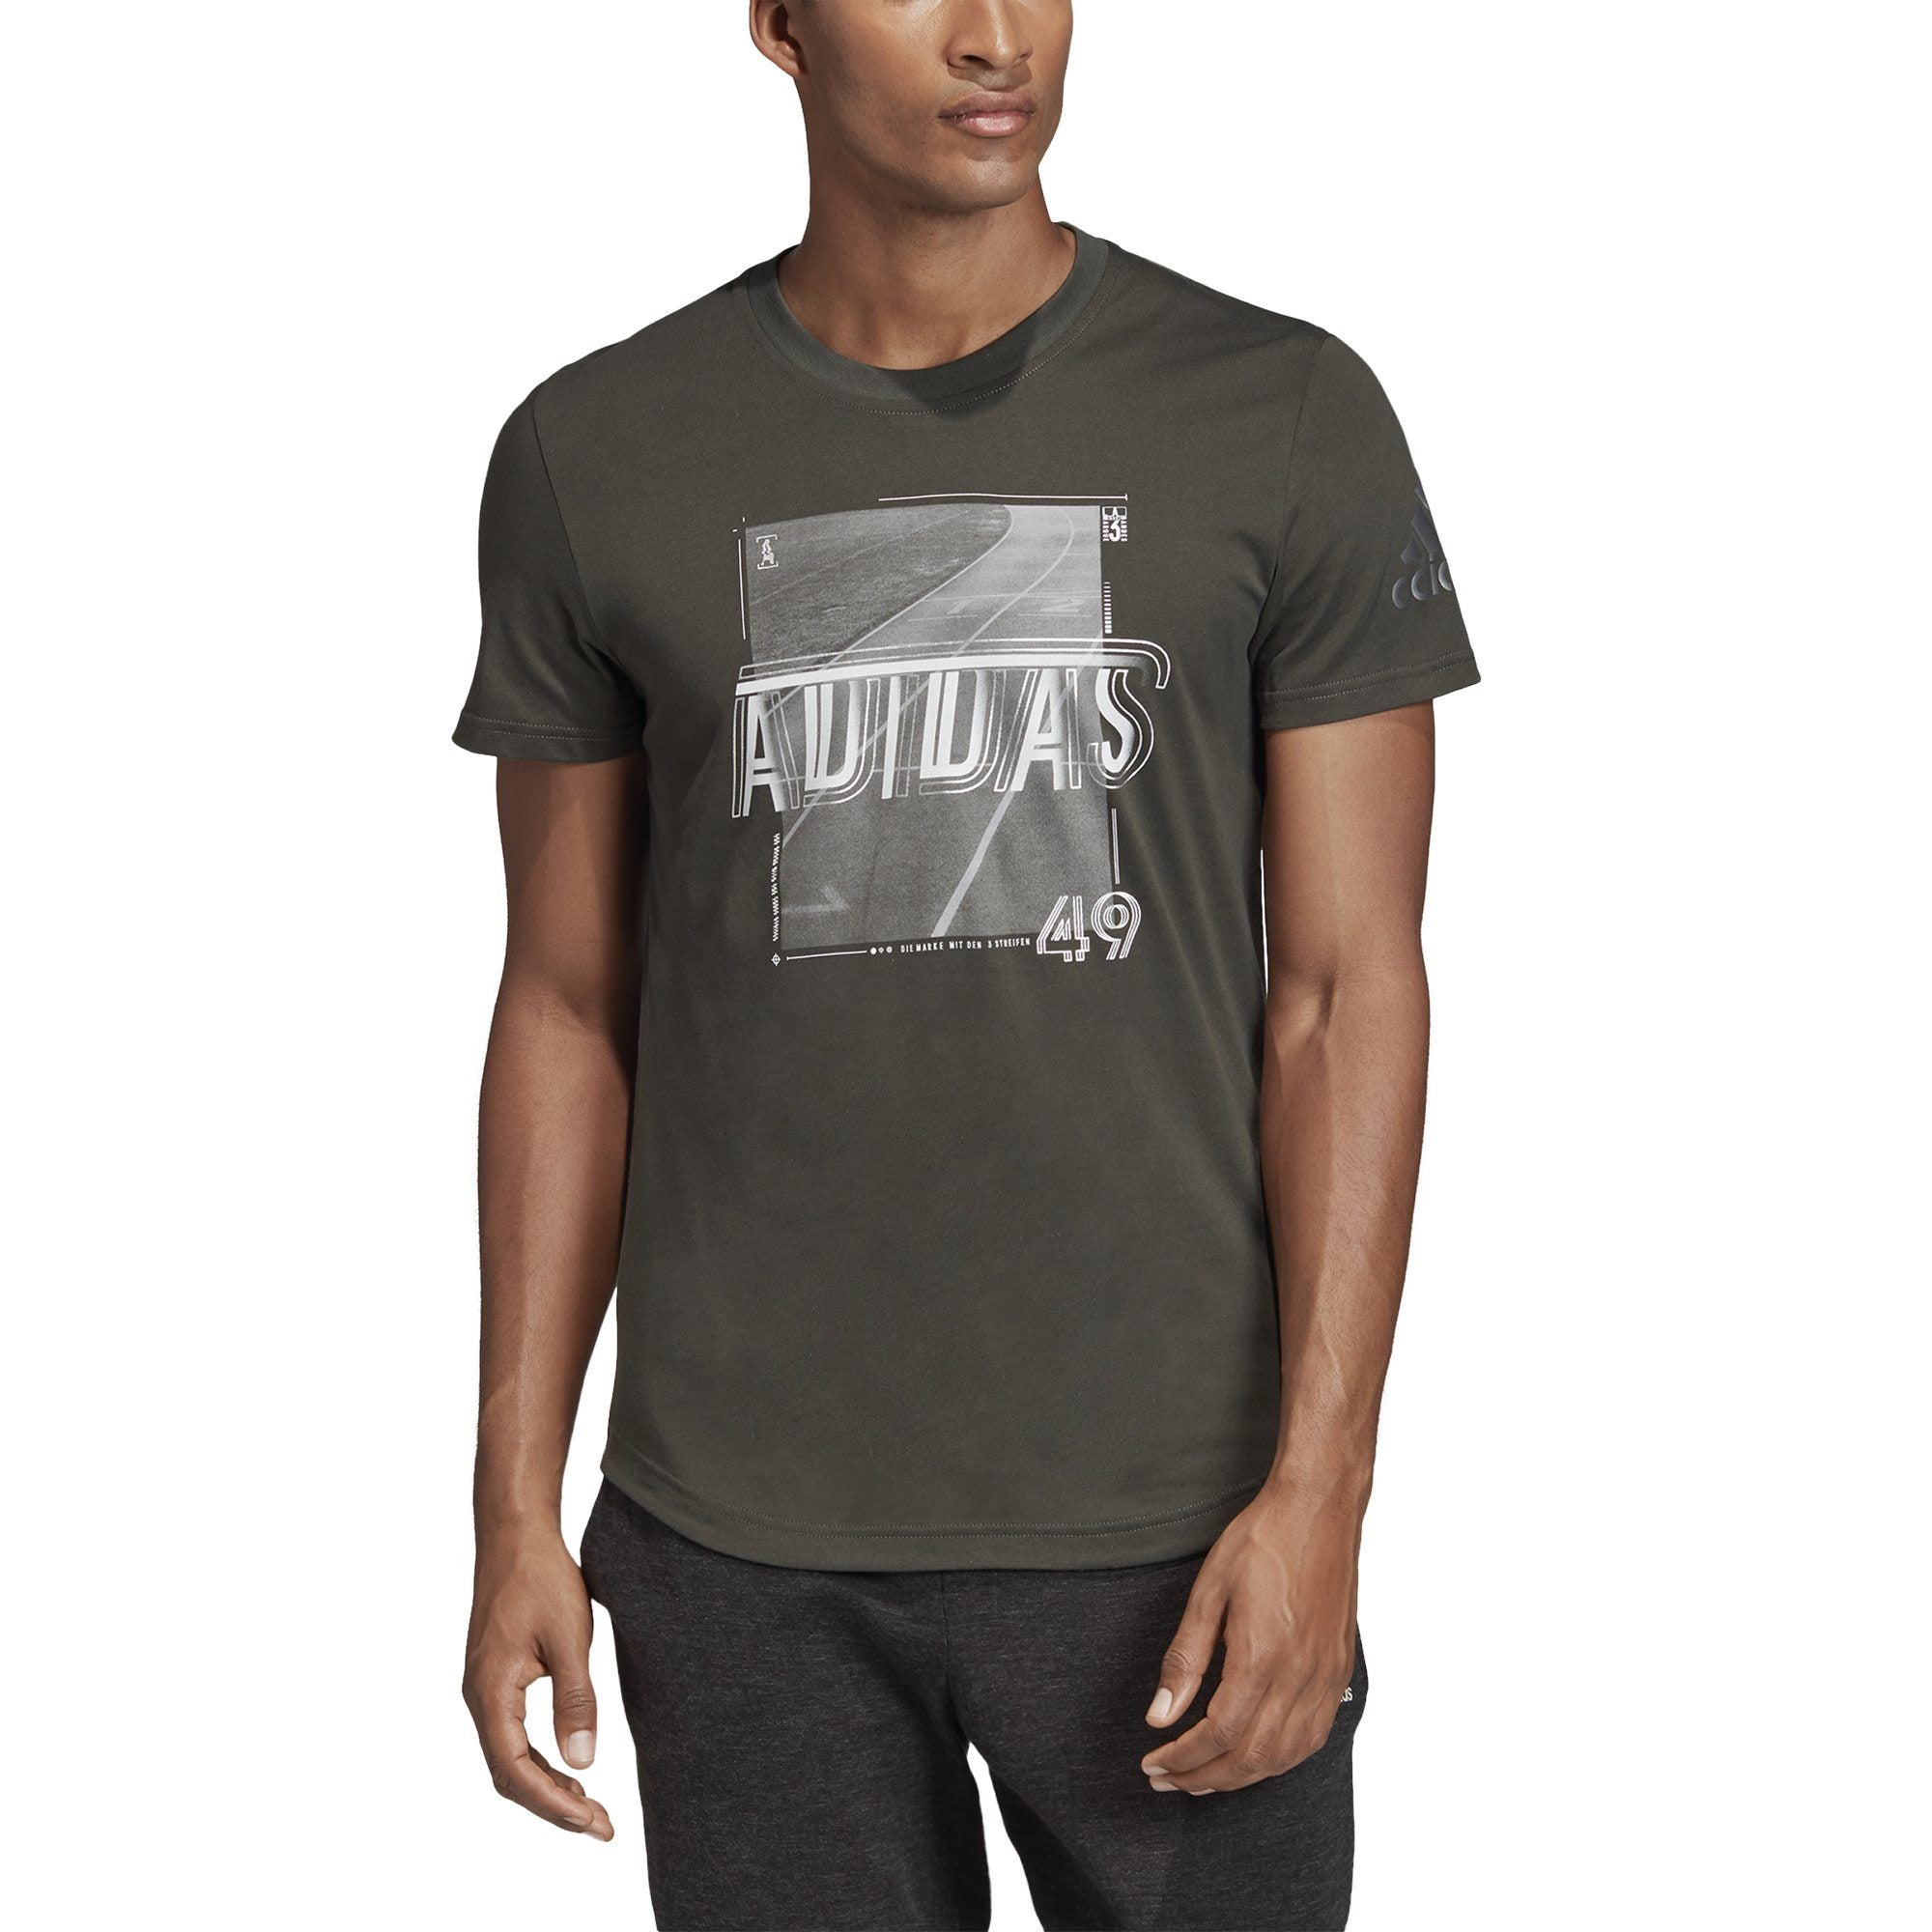 Adidas Mens Sport ID Foil Tee - legend earth SP-APPARELTEES-MENS Adidas